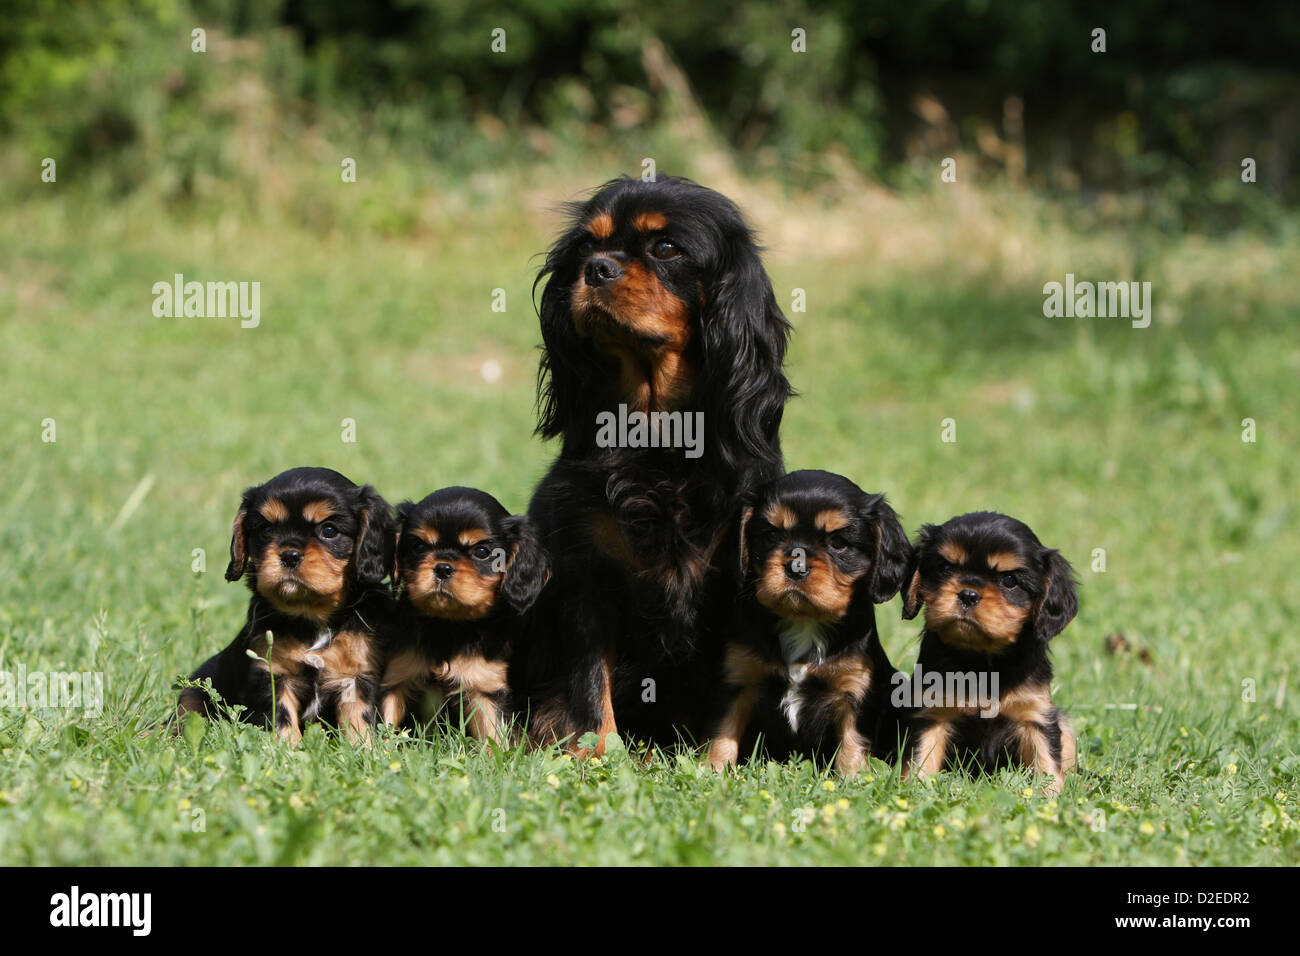 Dog cavalier king charles spaniel adult and four puppies black and dog cavalier king charles spaniel adult and four puppies black and tan sitting in a meadow thecheapjerseys Images